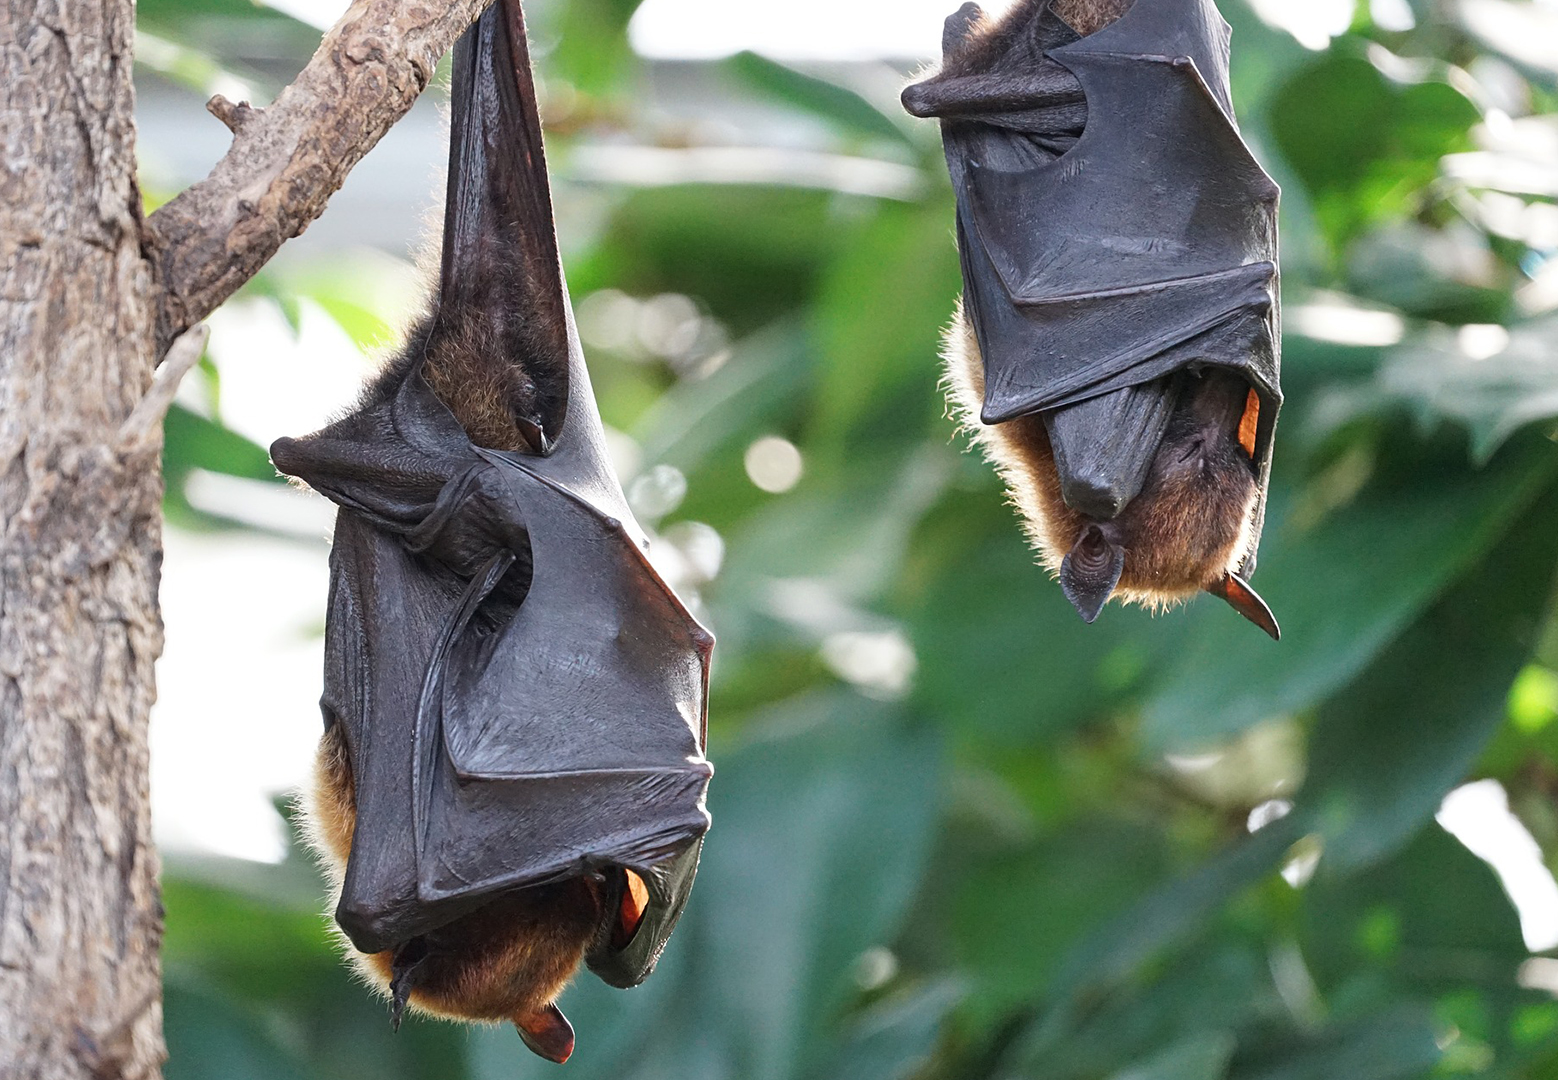 flying-foxes-2237209_1920_edited.jpg